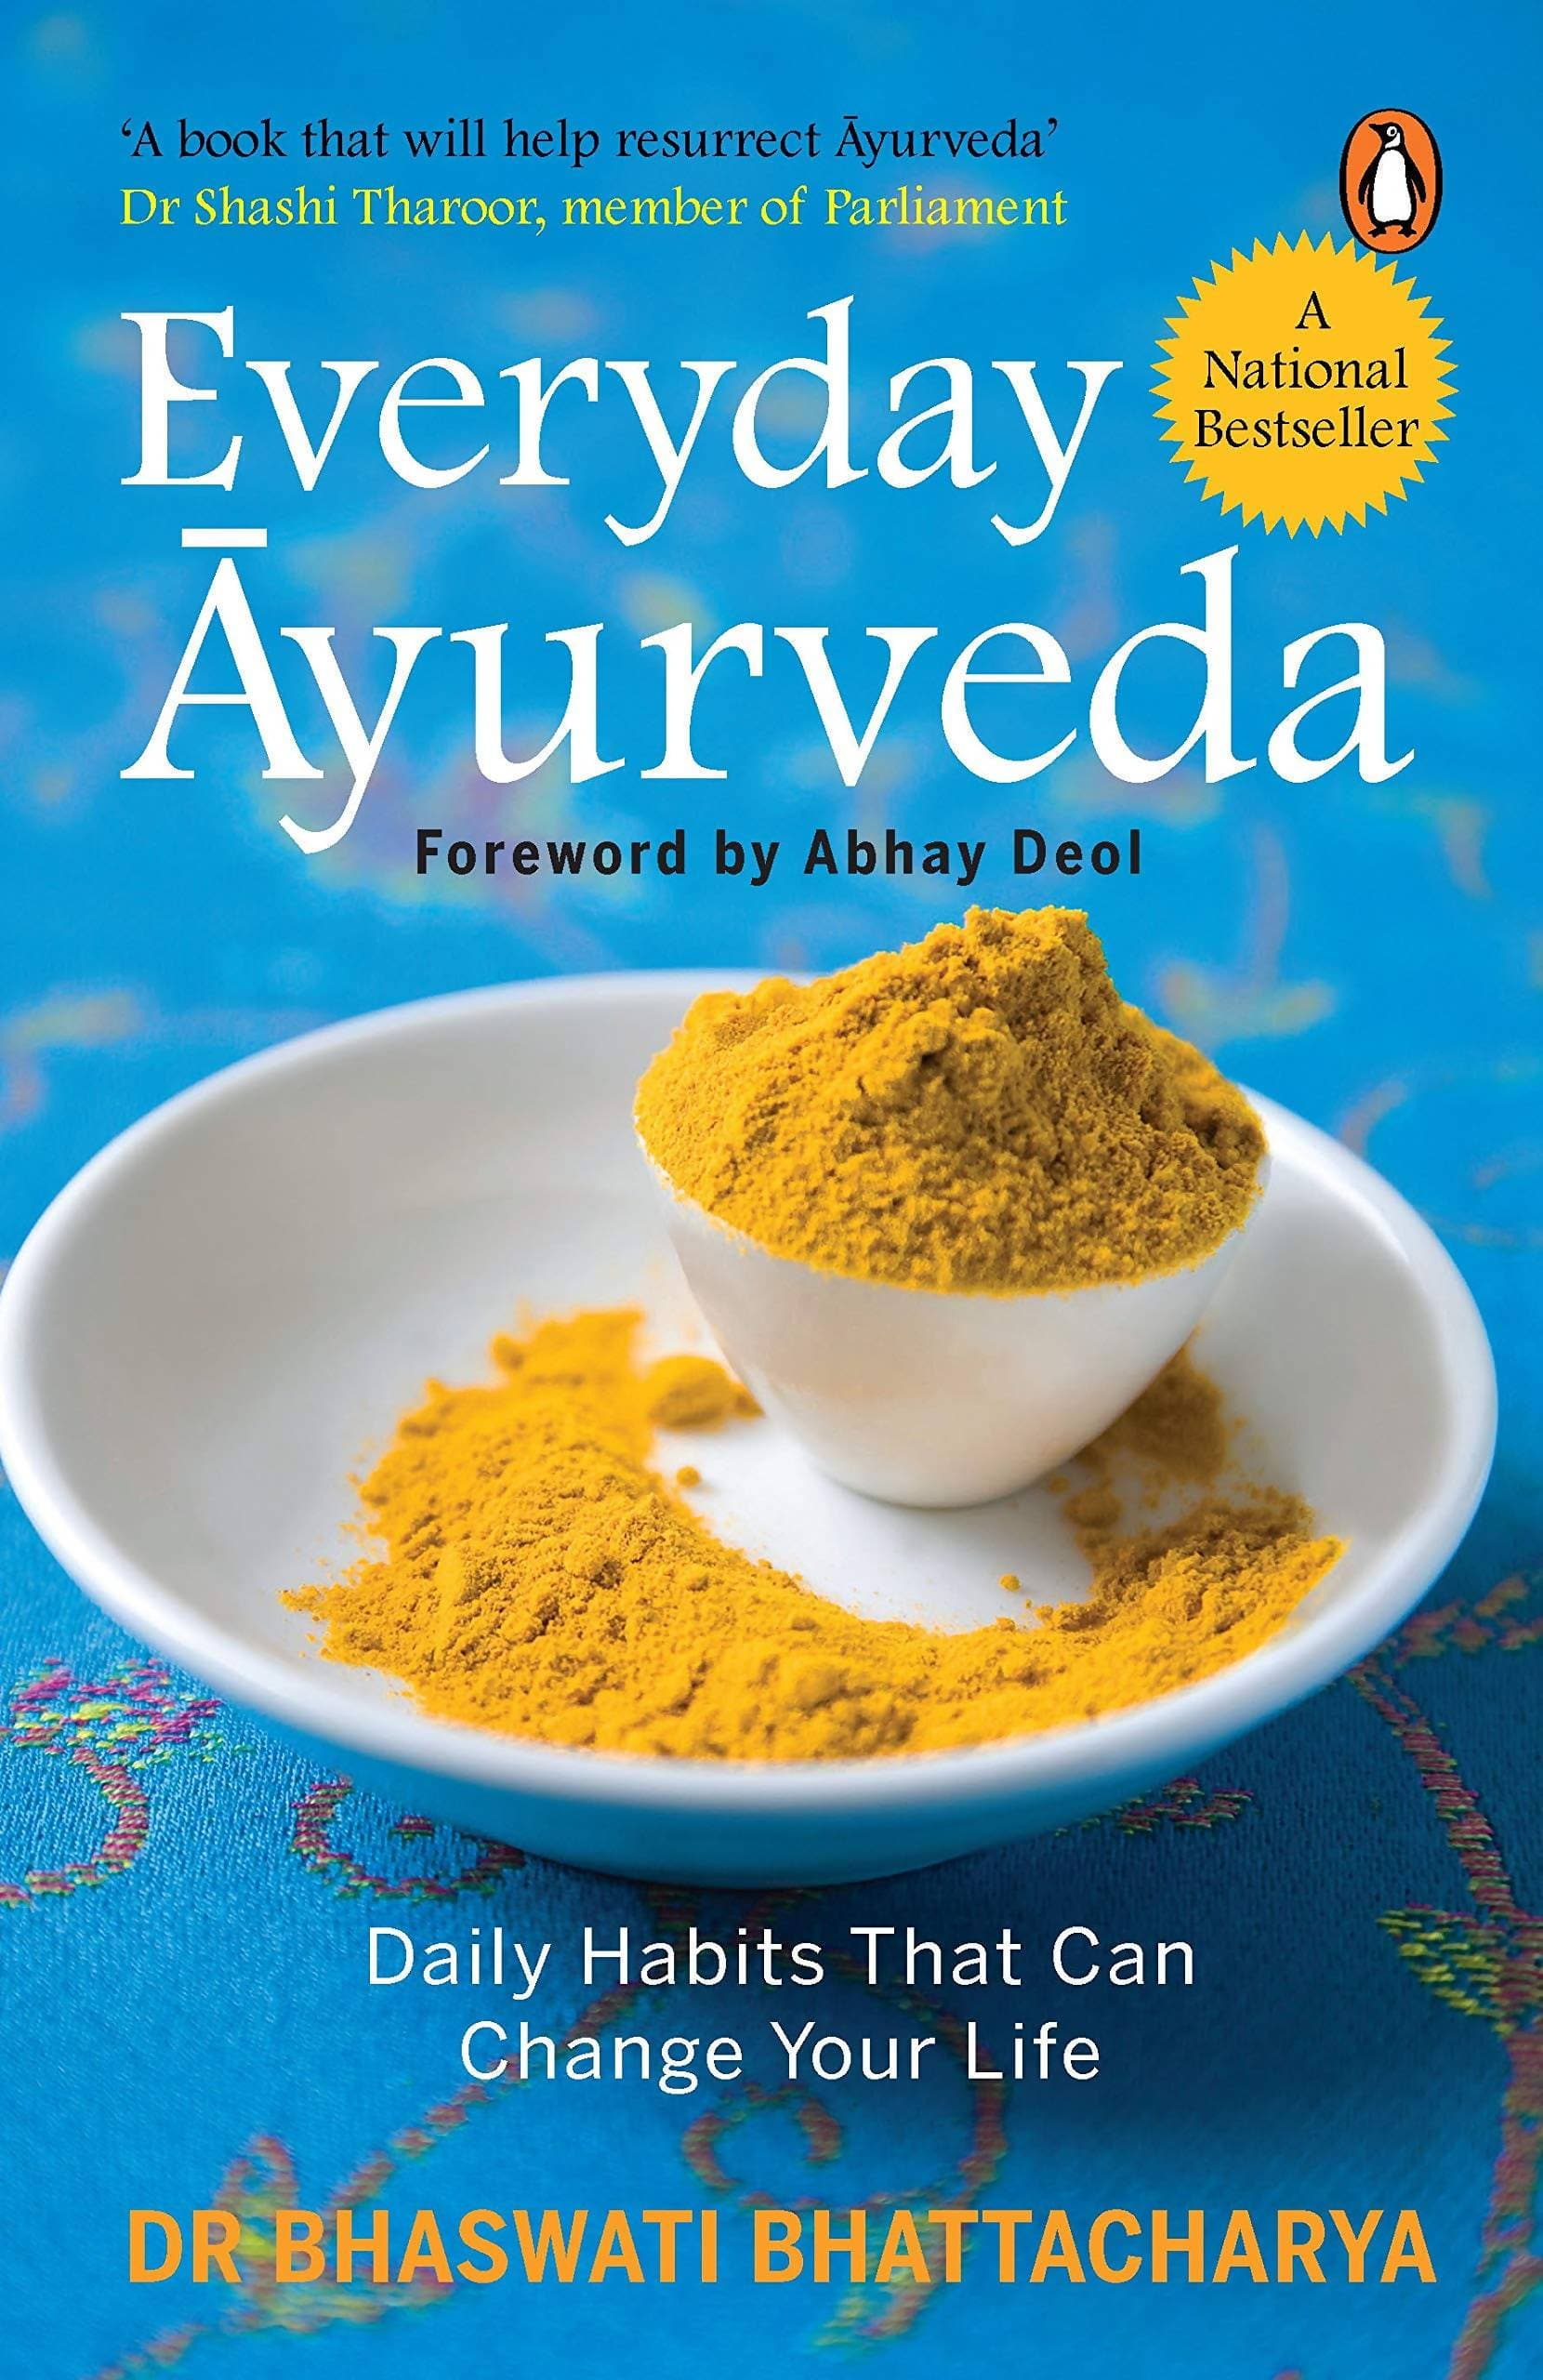 Everyday Ayurveda - Daily Habits That Can Change Your Life